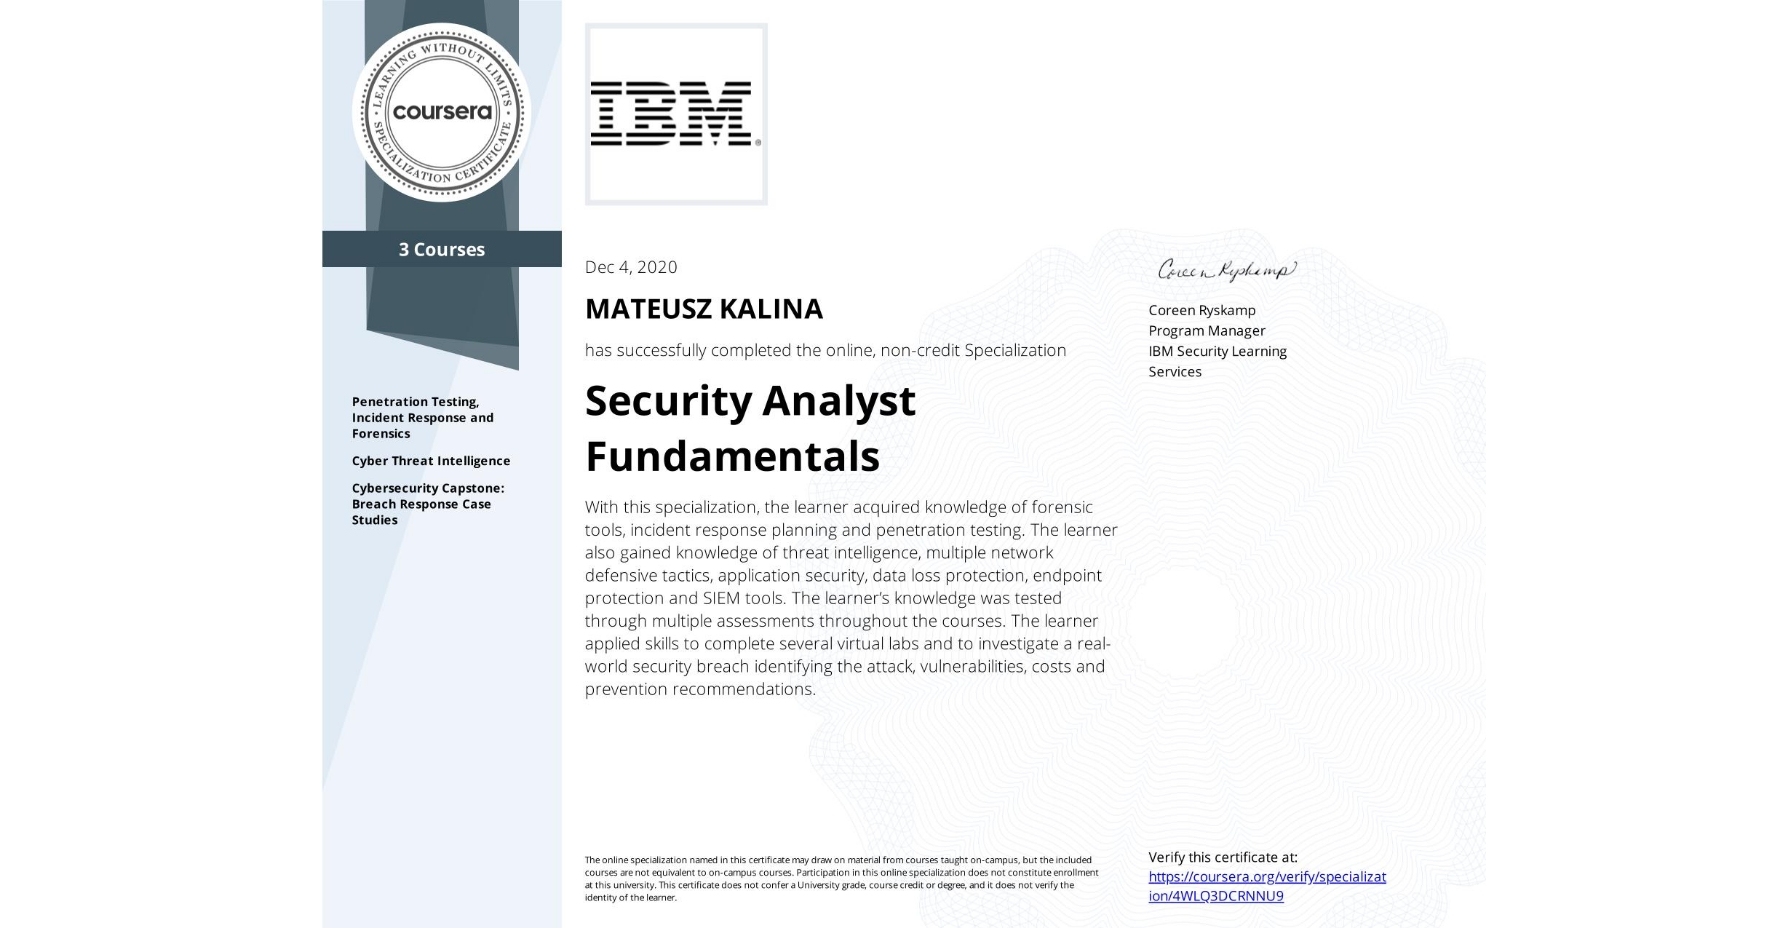 View certificate for MATEUSZ KALINA, Security Analyst Fundamentals, offered through Coursera. With this specialization, the learner acquired knowledge of forensic tools, incident response planning and penetration testing.  The learner also gained knowledge of threat intelligence, multiple network defensive tactics, application security, data loss protection, endpoint protection and SIEM tools.  The learner's knowledge was tested through multiple assessments throughout the courses. The learner applied skills to complete several virtual labs and to investigate a real-world security breach identifying the attack, vulnerabilities, costs and prevention recommendations.